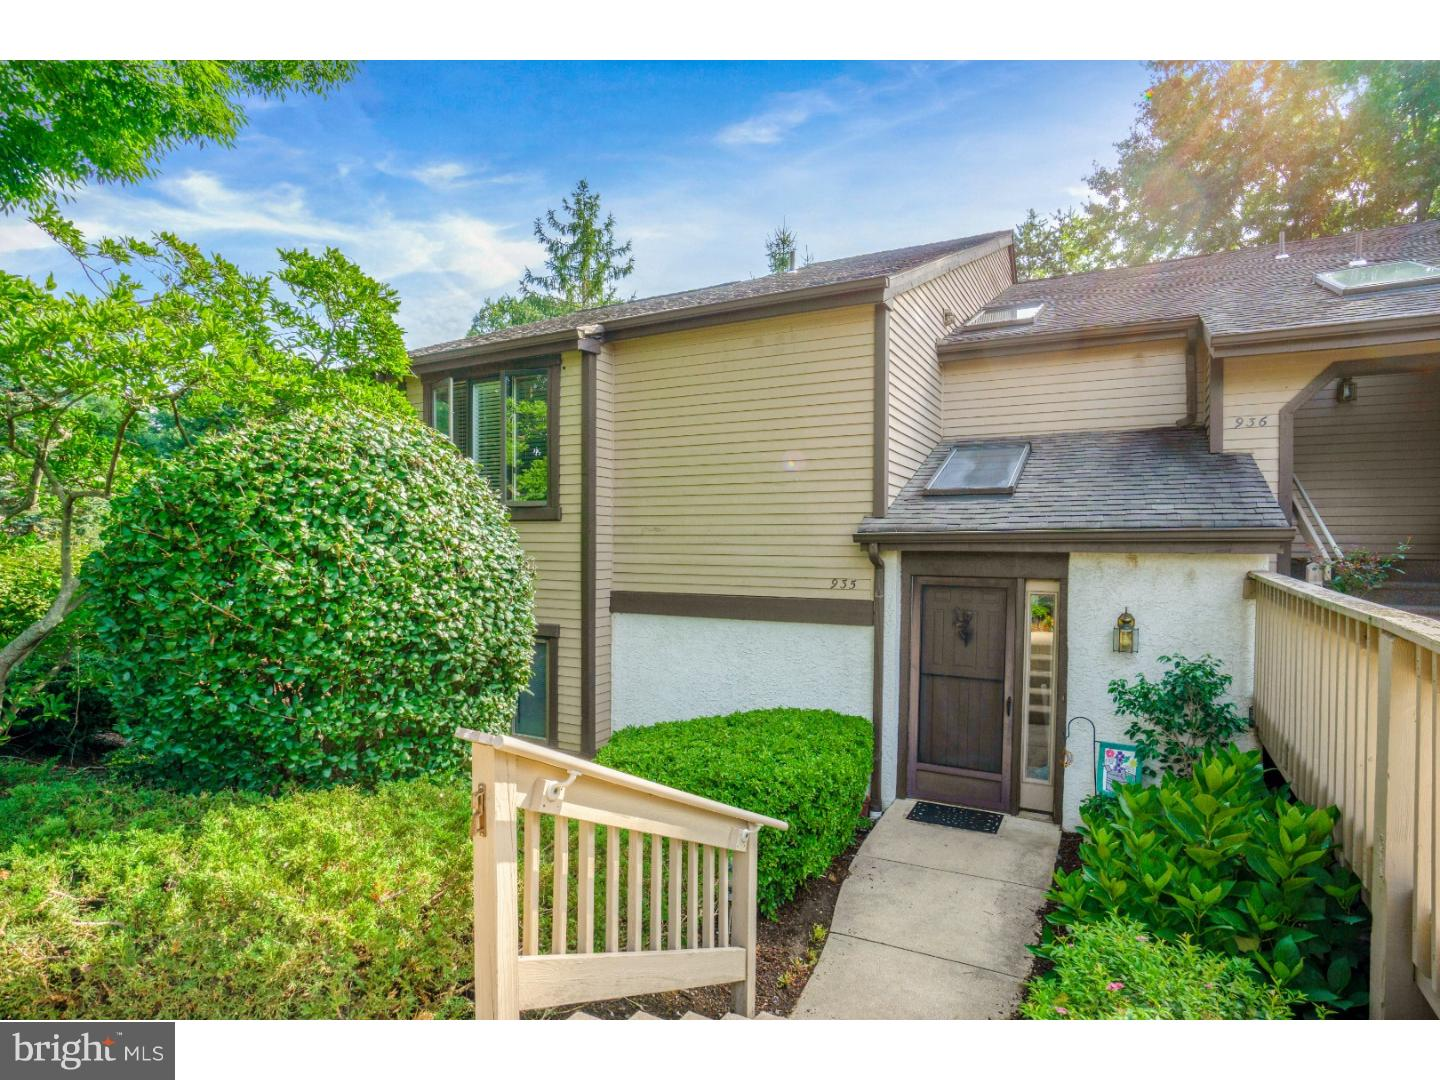 935 Jefferson Way West Chester, PA 19380